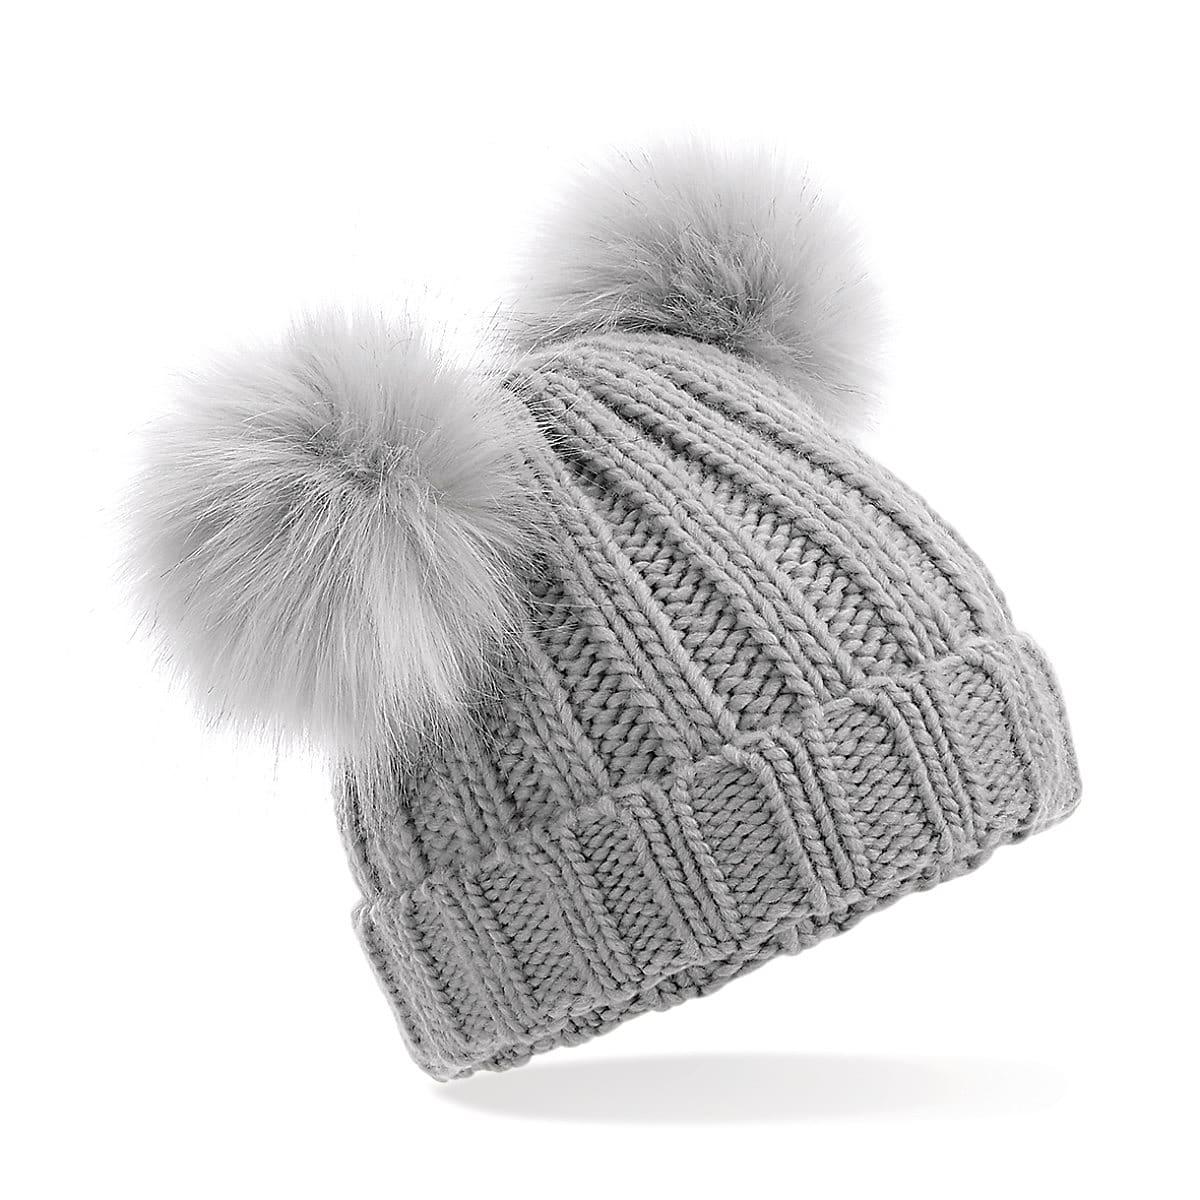 Beechfield Infant Double Pom Pom Beanie Hat in Light Grey (Product Code: B414A)